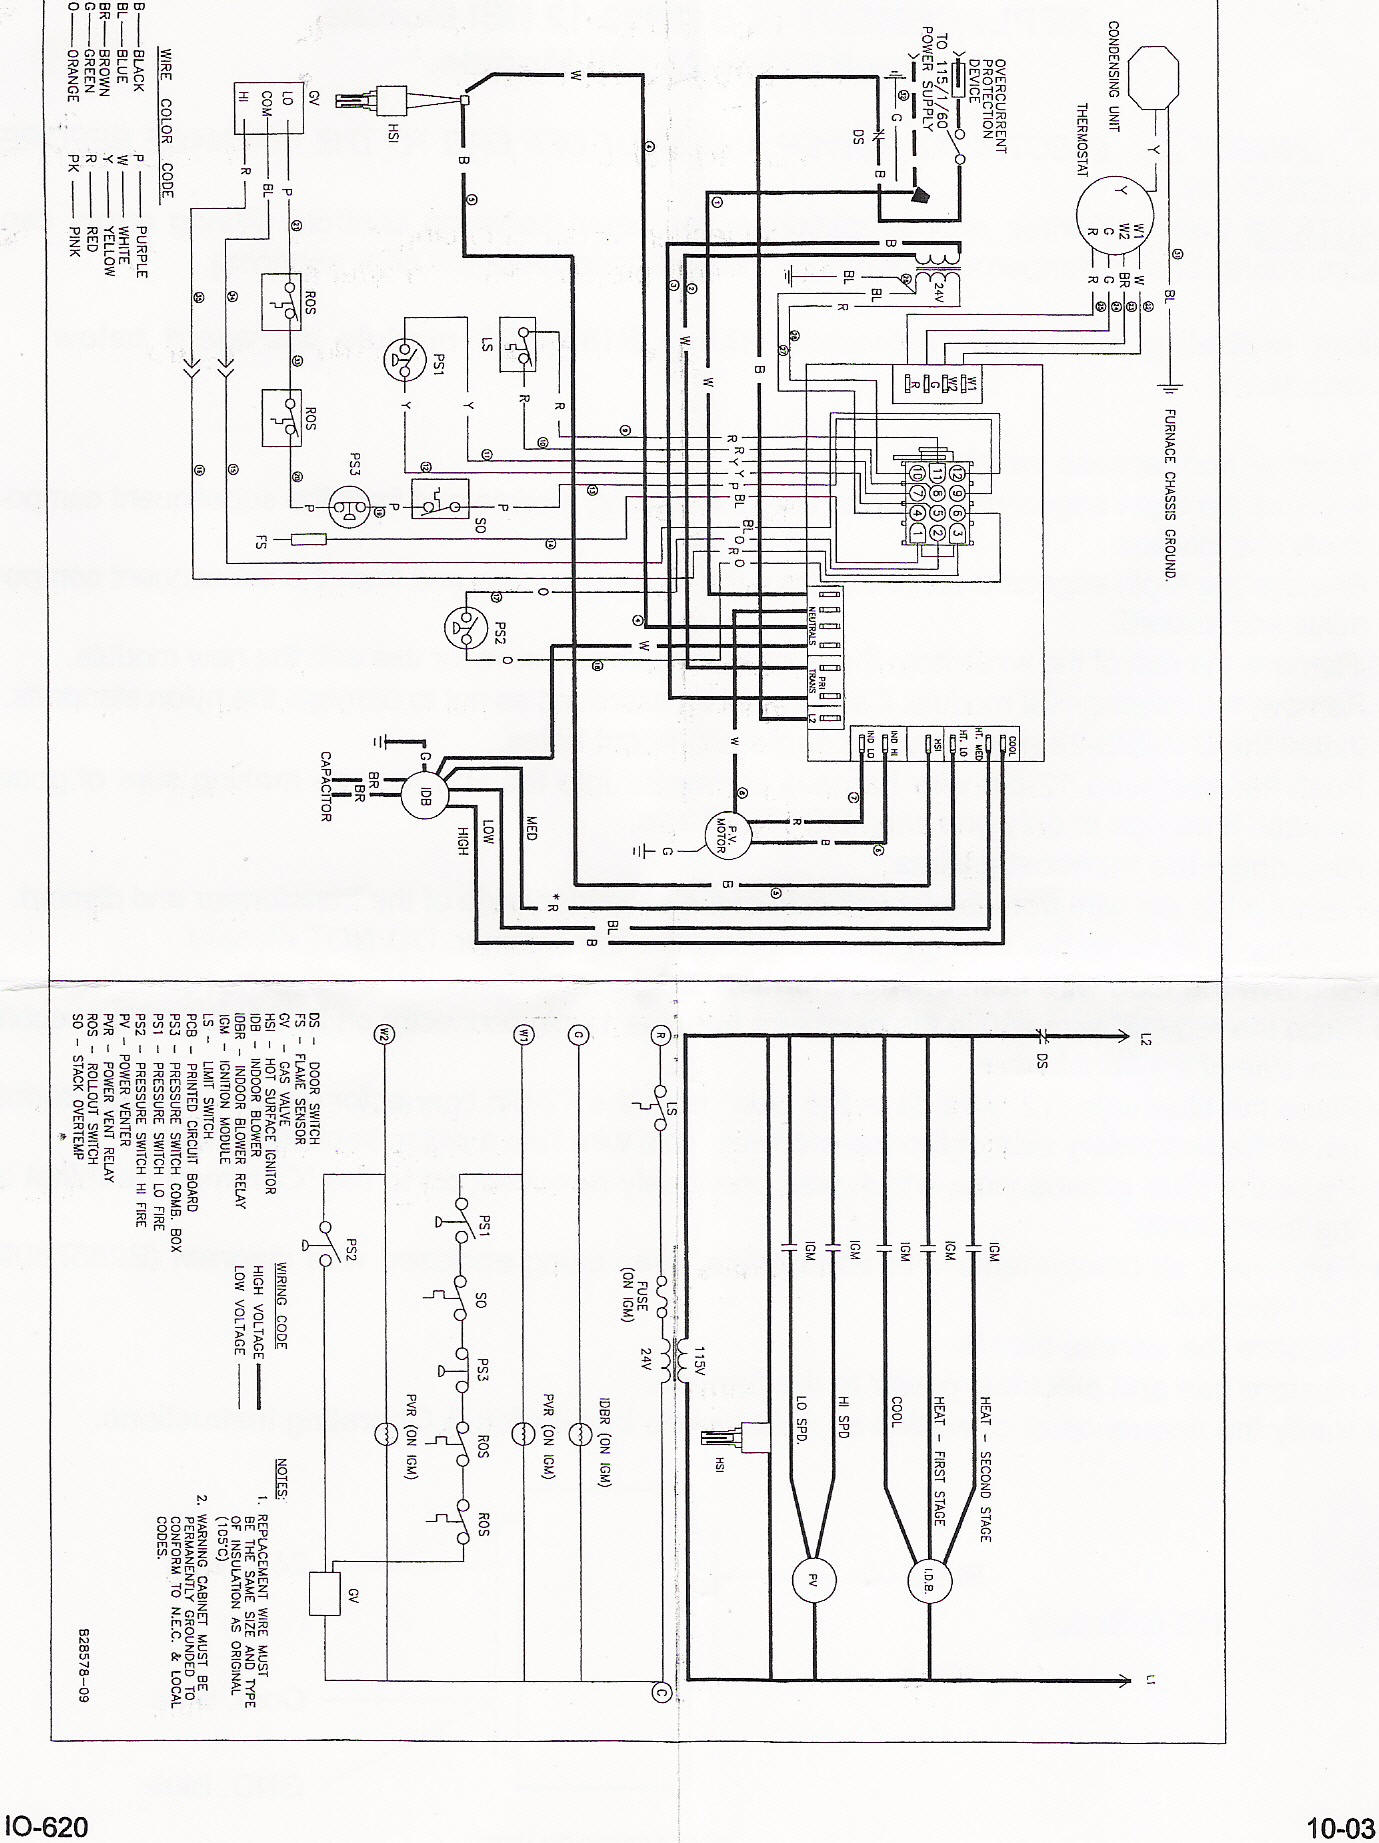 goodma2 instr goodman control board b18099 23 instructions goodman furnace wiring diagram at mifinder.co